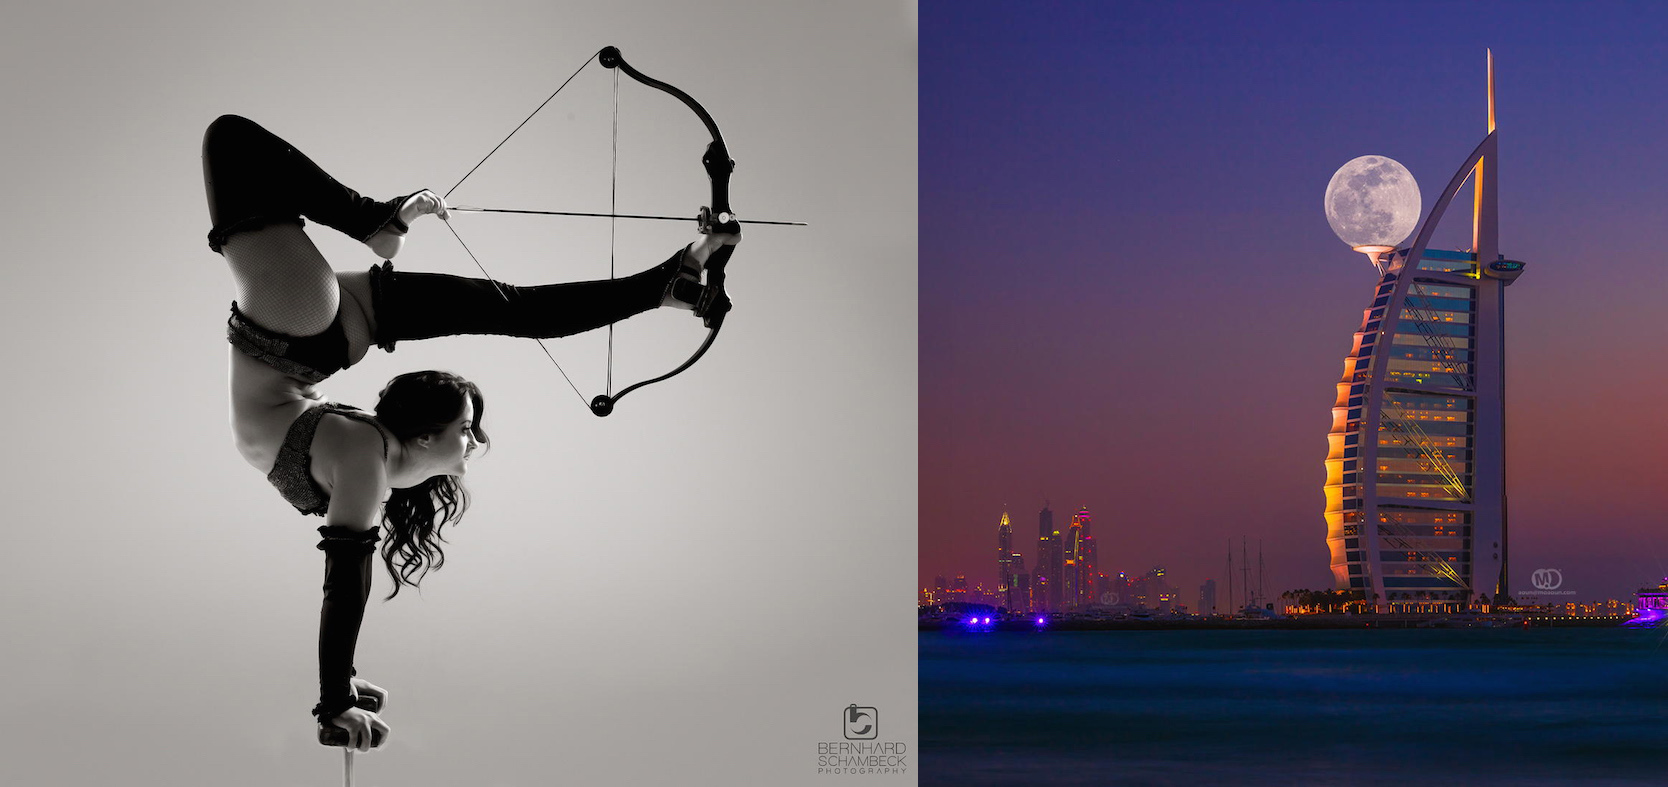 25 Most Popular 500px Photos Ever... According to Reddit